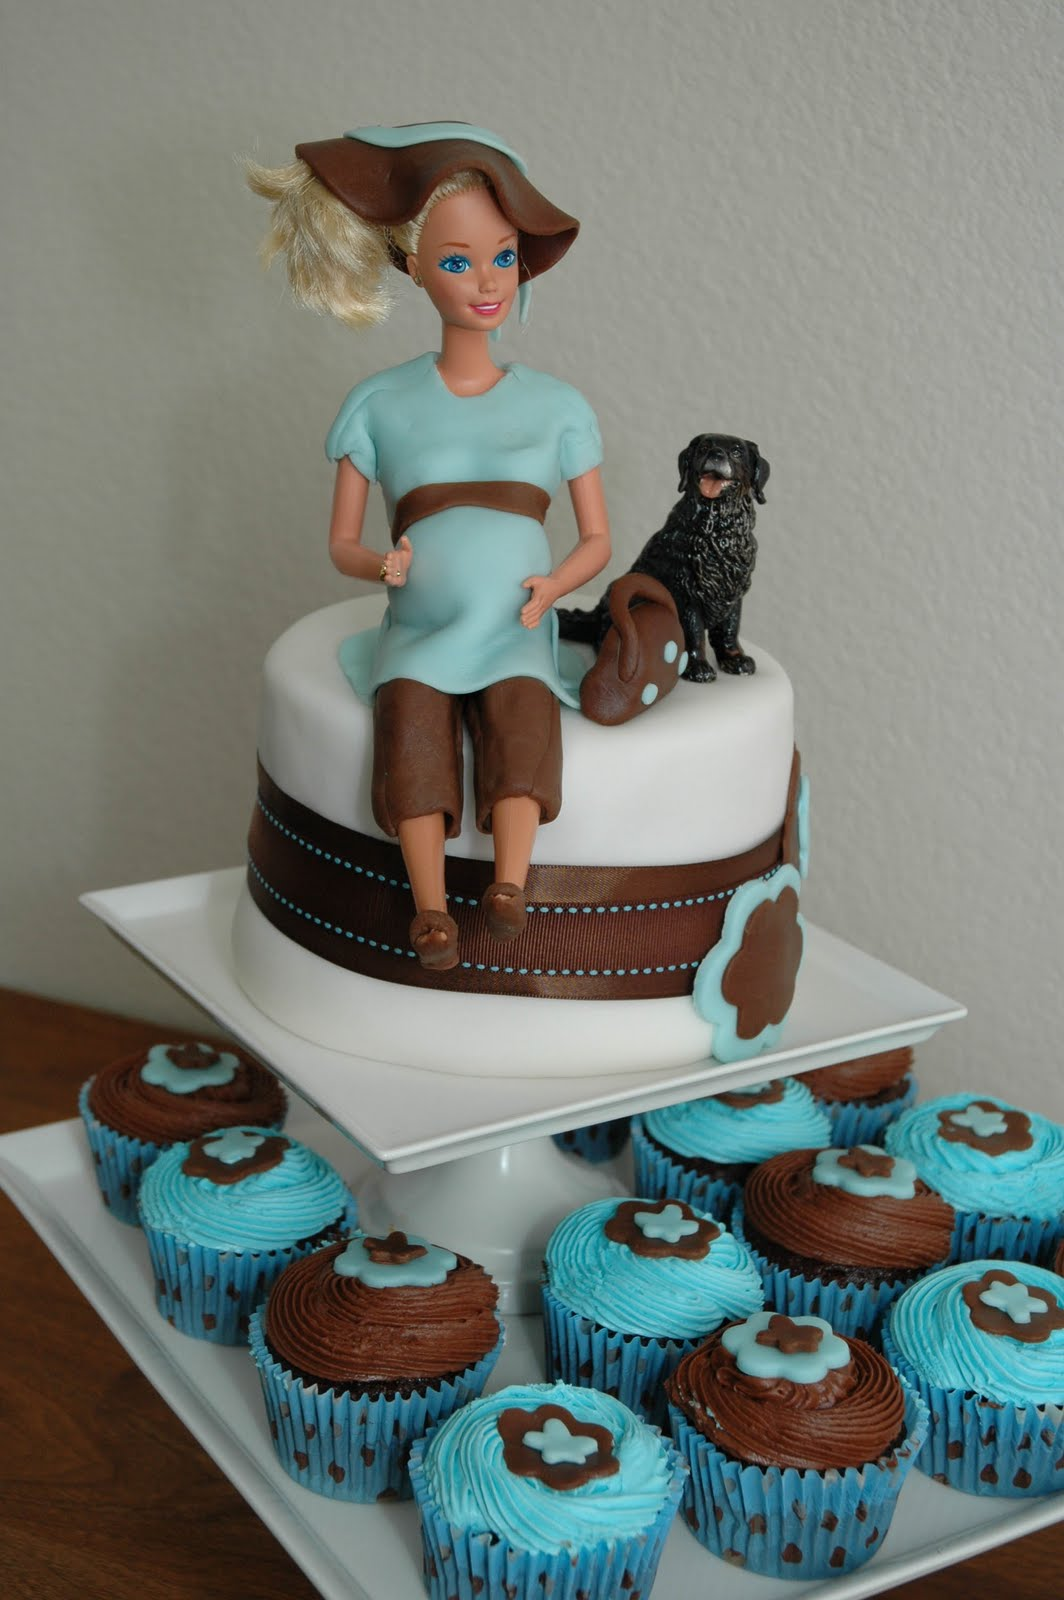 The Cutest Baby Shower Cake Ever: Fondant + Barbie + Beaker